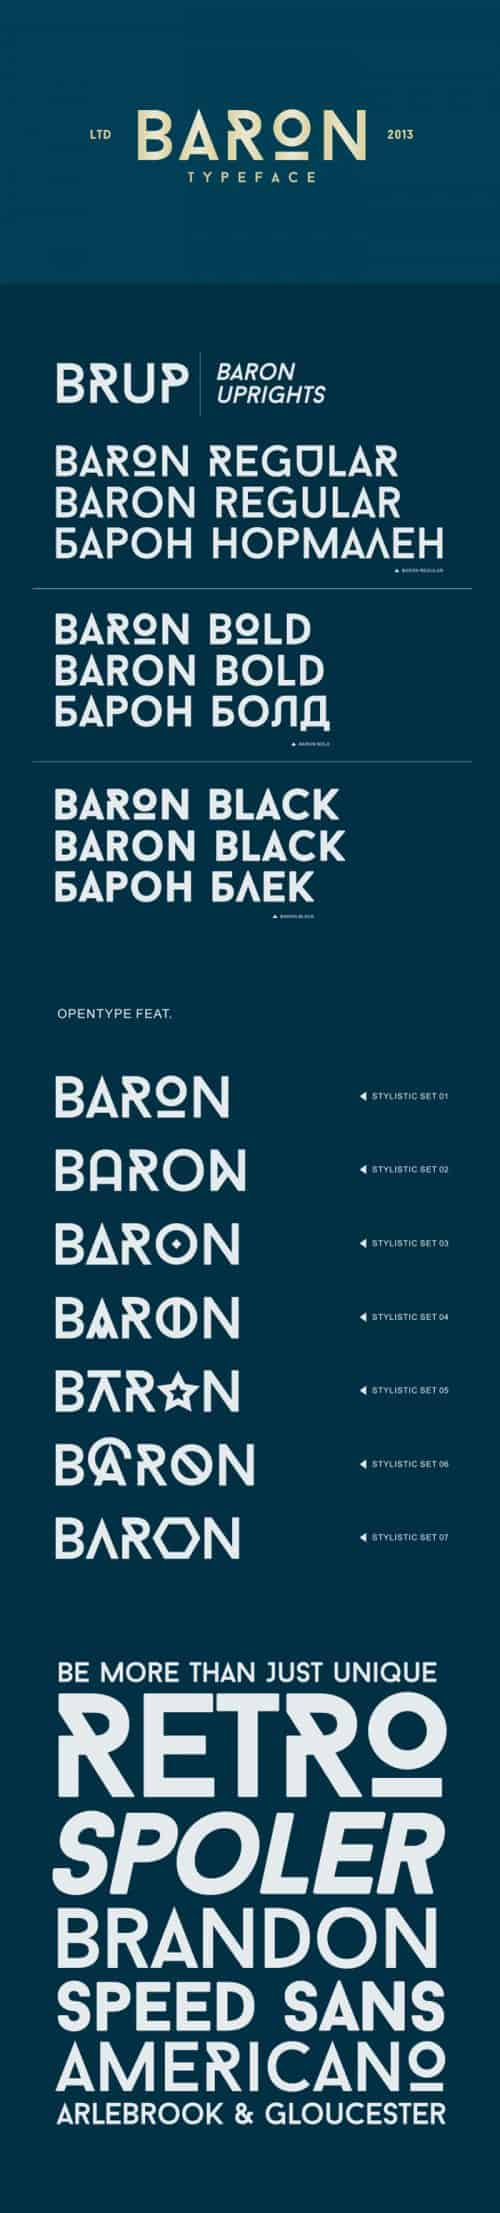 Download the Baron Typeface